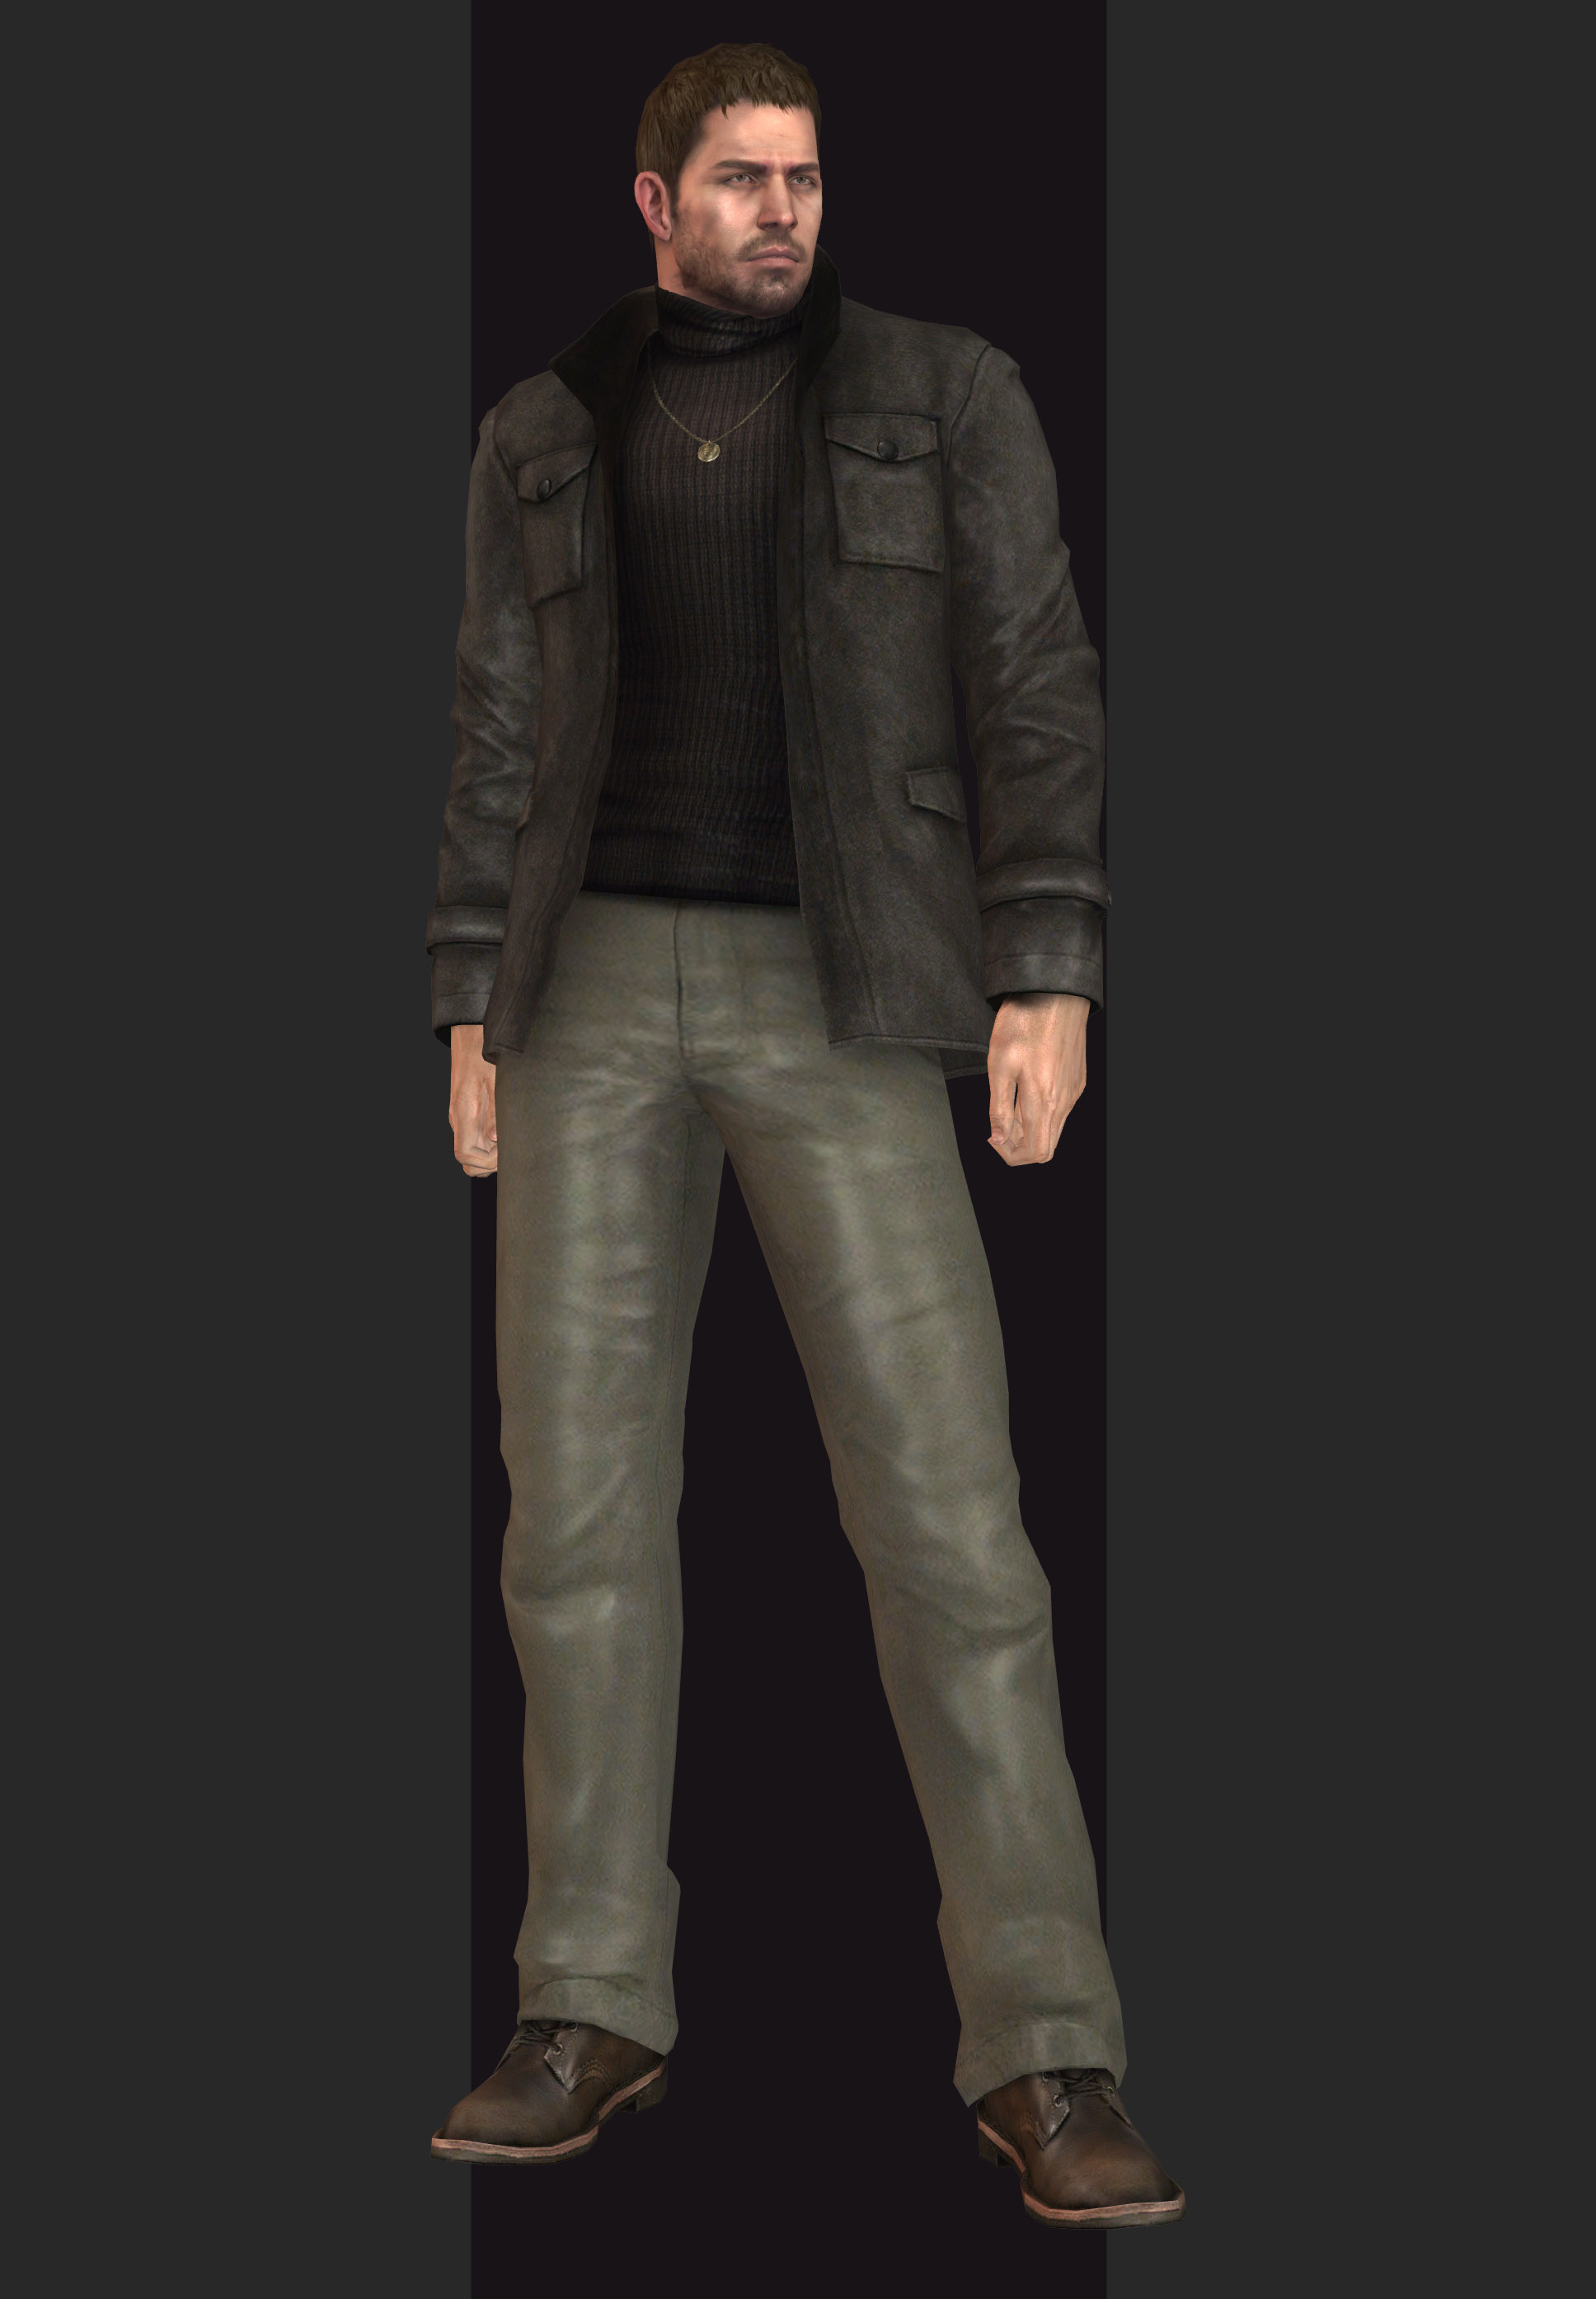 Xps Re6 Chris Redfield Personal Outfit By Henryque999 On Deviantart